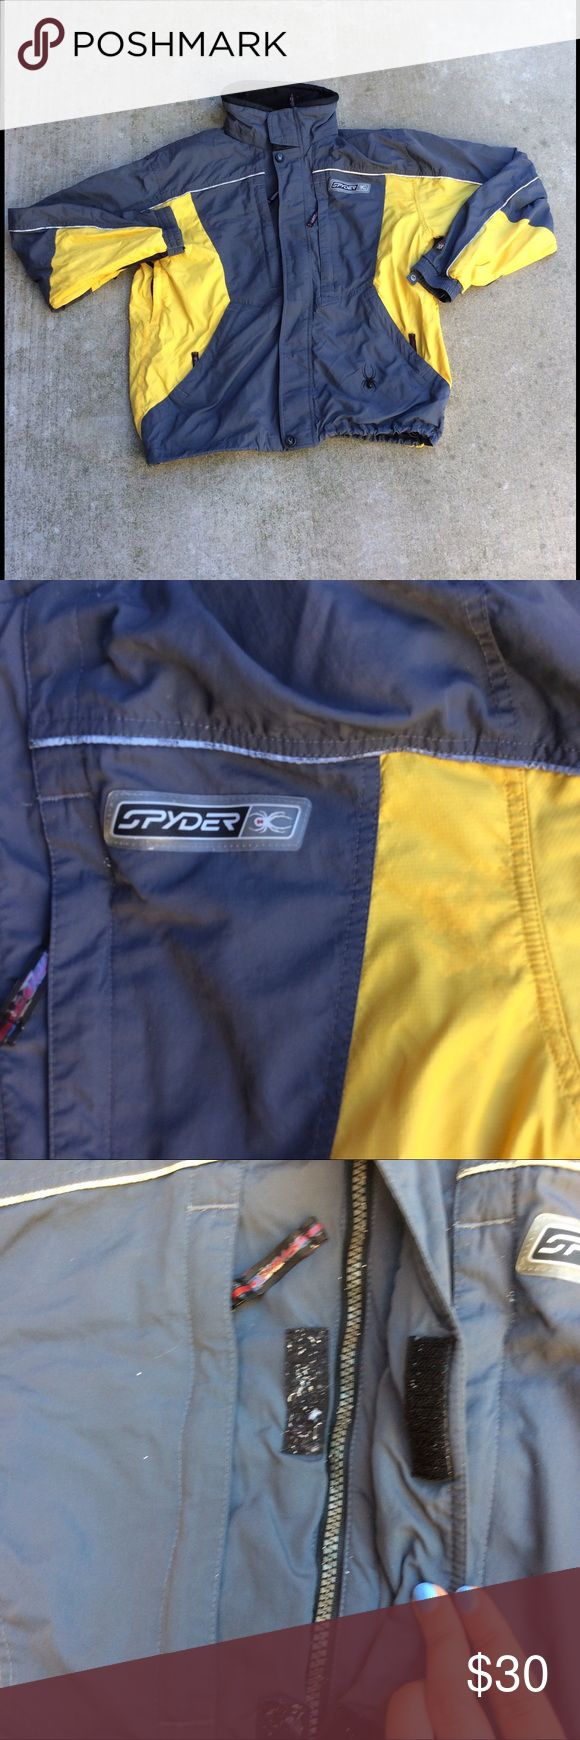 Men's spyder jacket Mens spider jacket   Size large   Yellow and gray   XT 5,000   Heavily used with discoloration as pictured. Needs TLC Spyder Jackets & Coats Ski & Snowboard